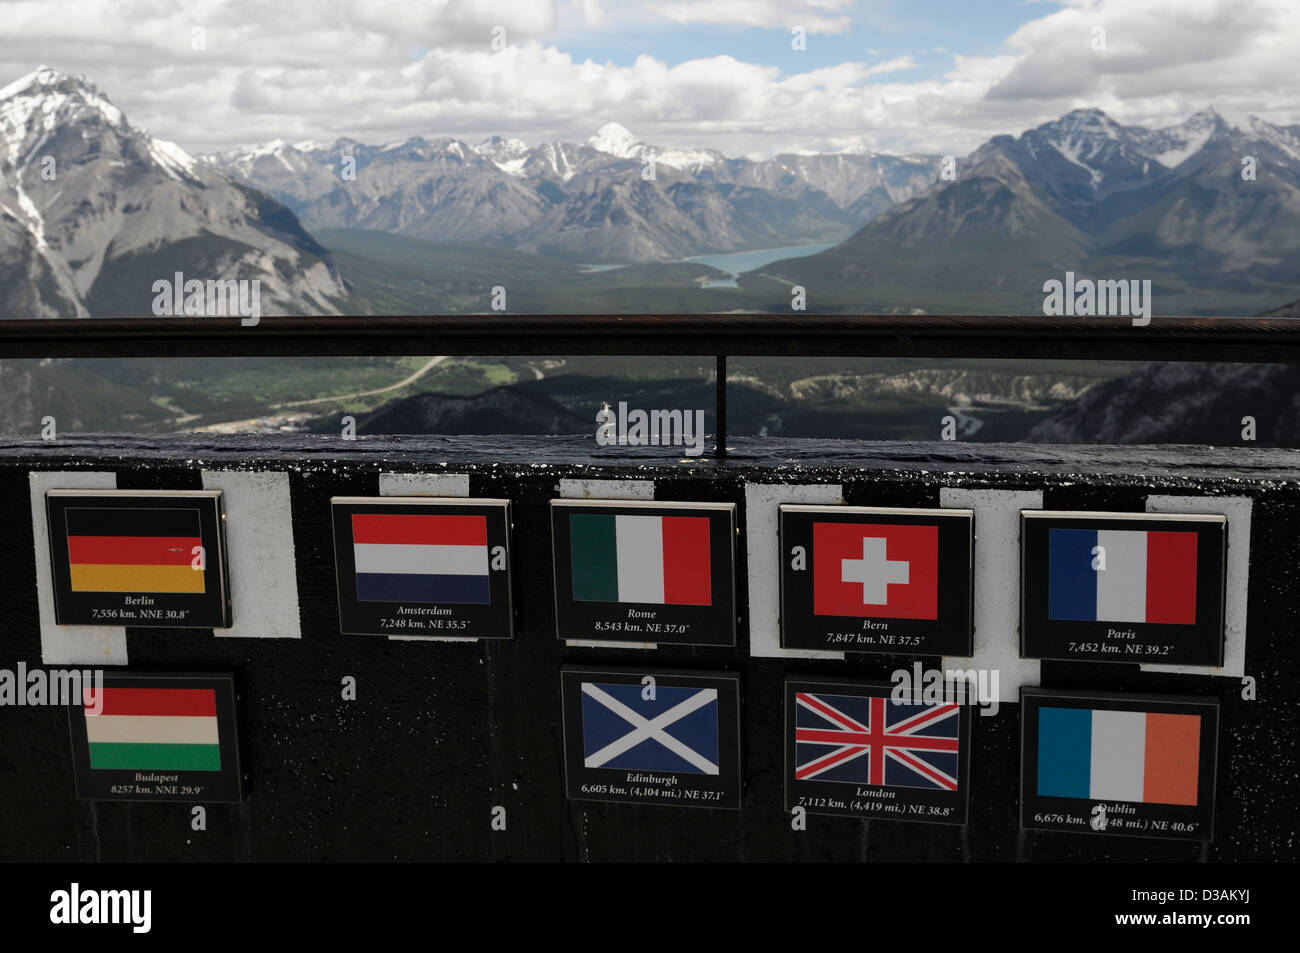 point of interest distance sign european cities destinations from sulphur mountain banff gondola national park canadian - Stock Image